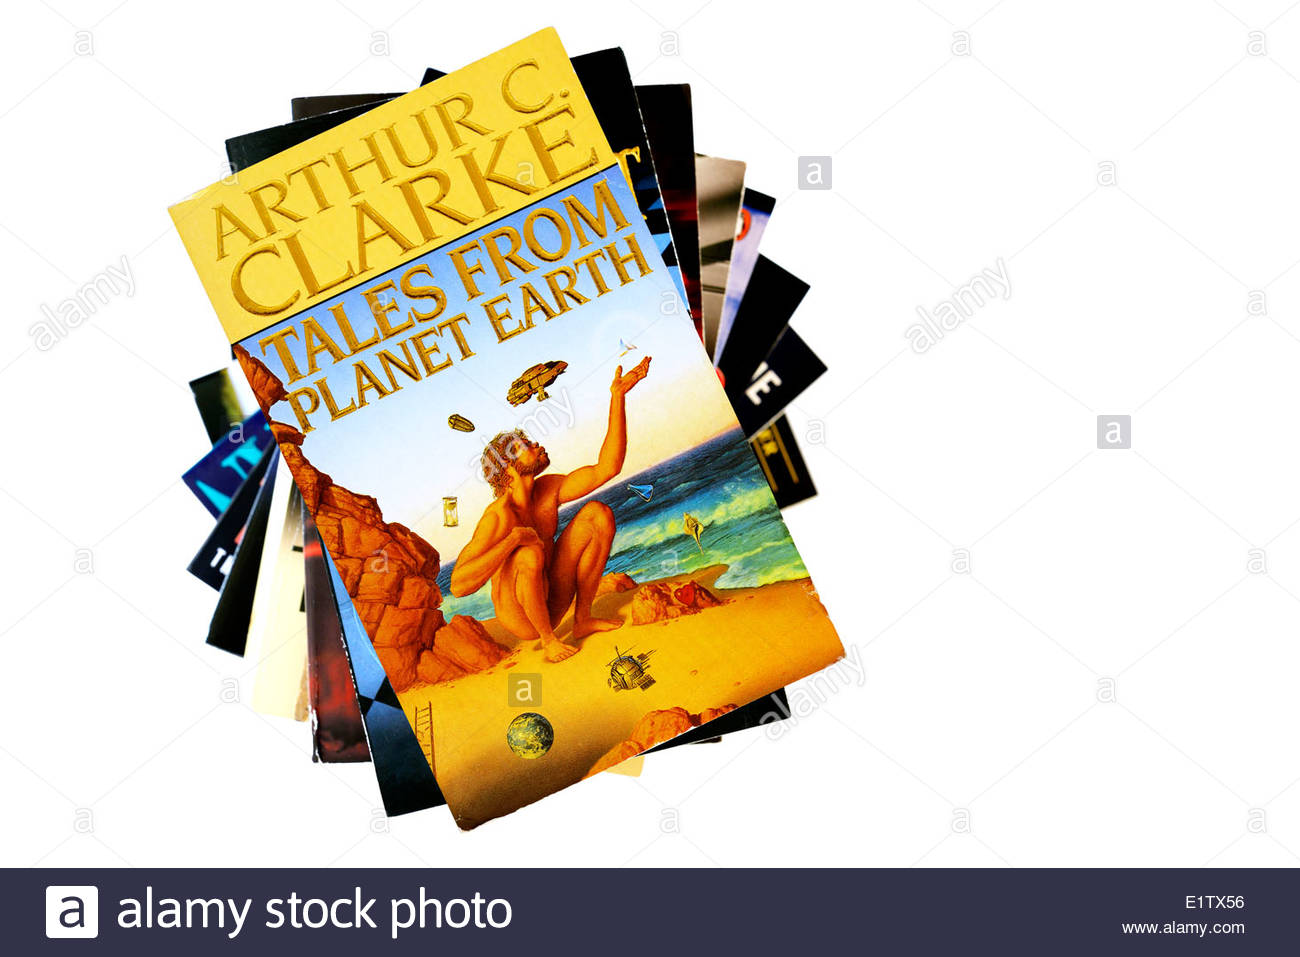 Arthur C Clarke paperback title Tales from Planet Earth, stacked used books, England - Stock Image